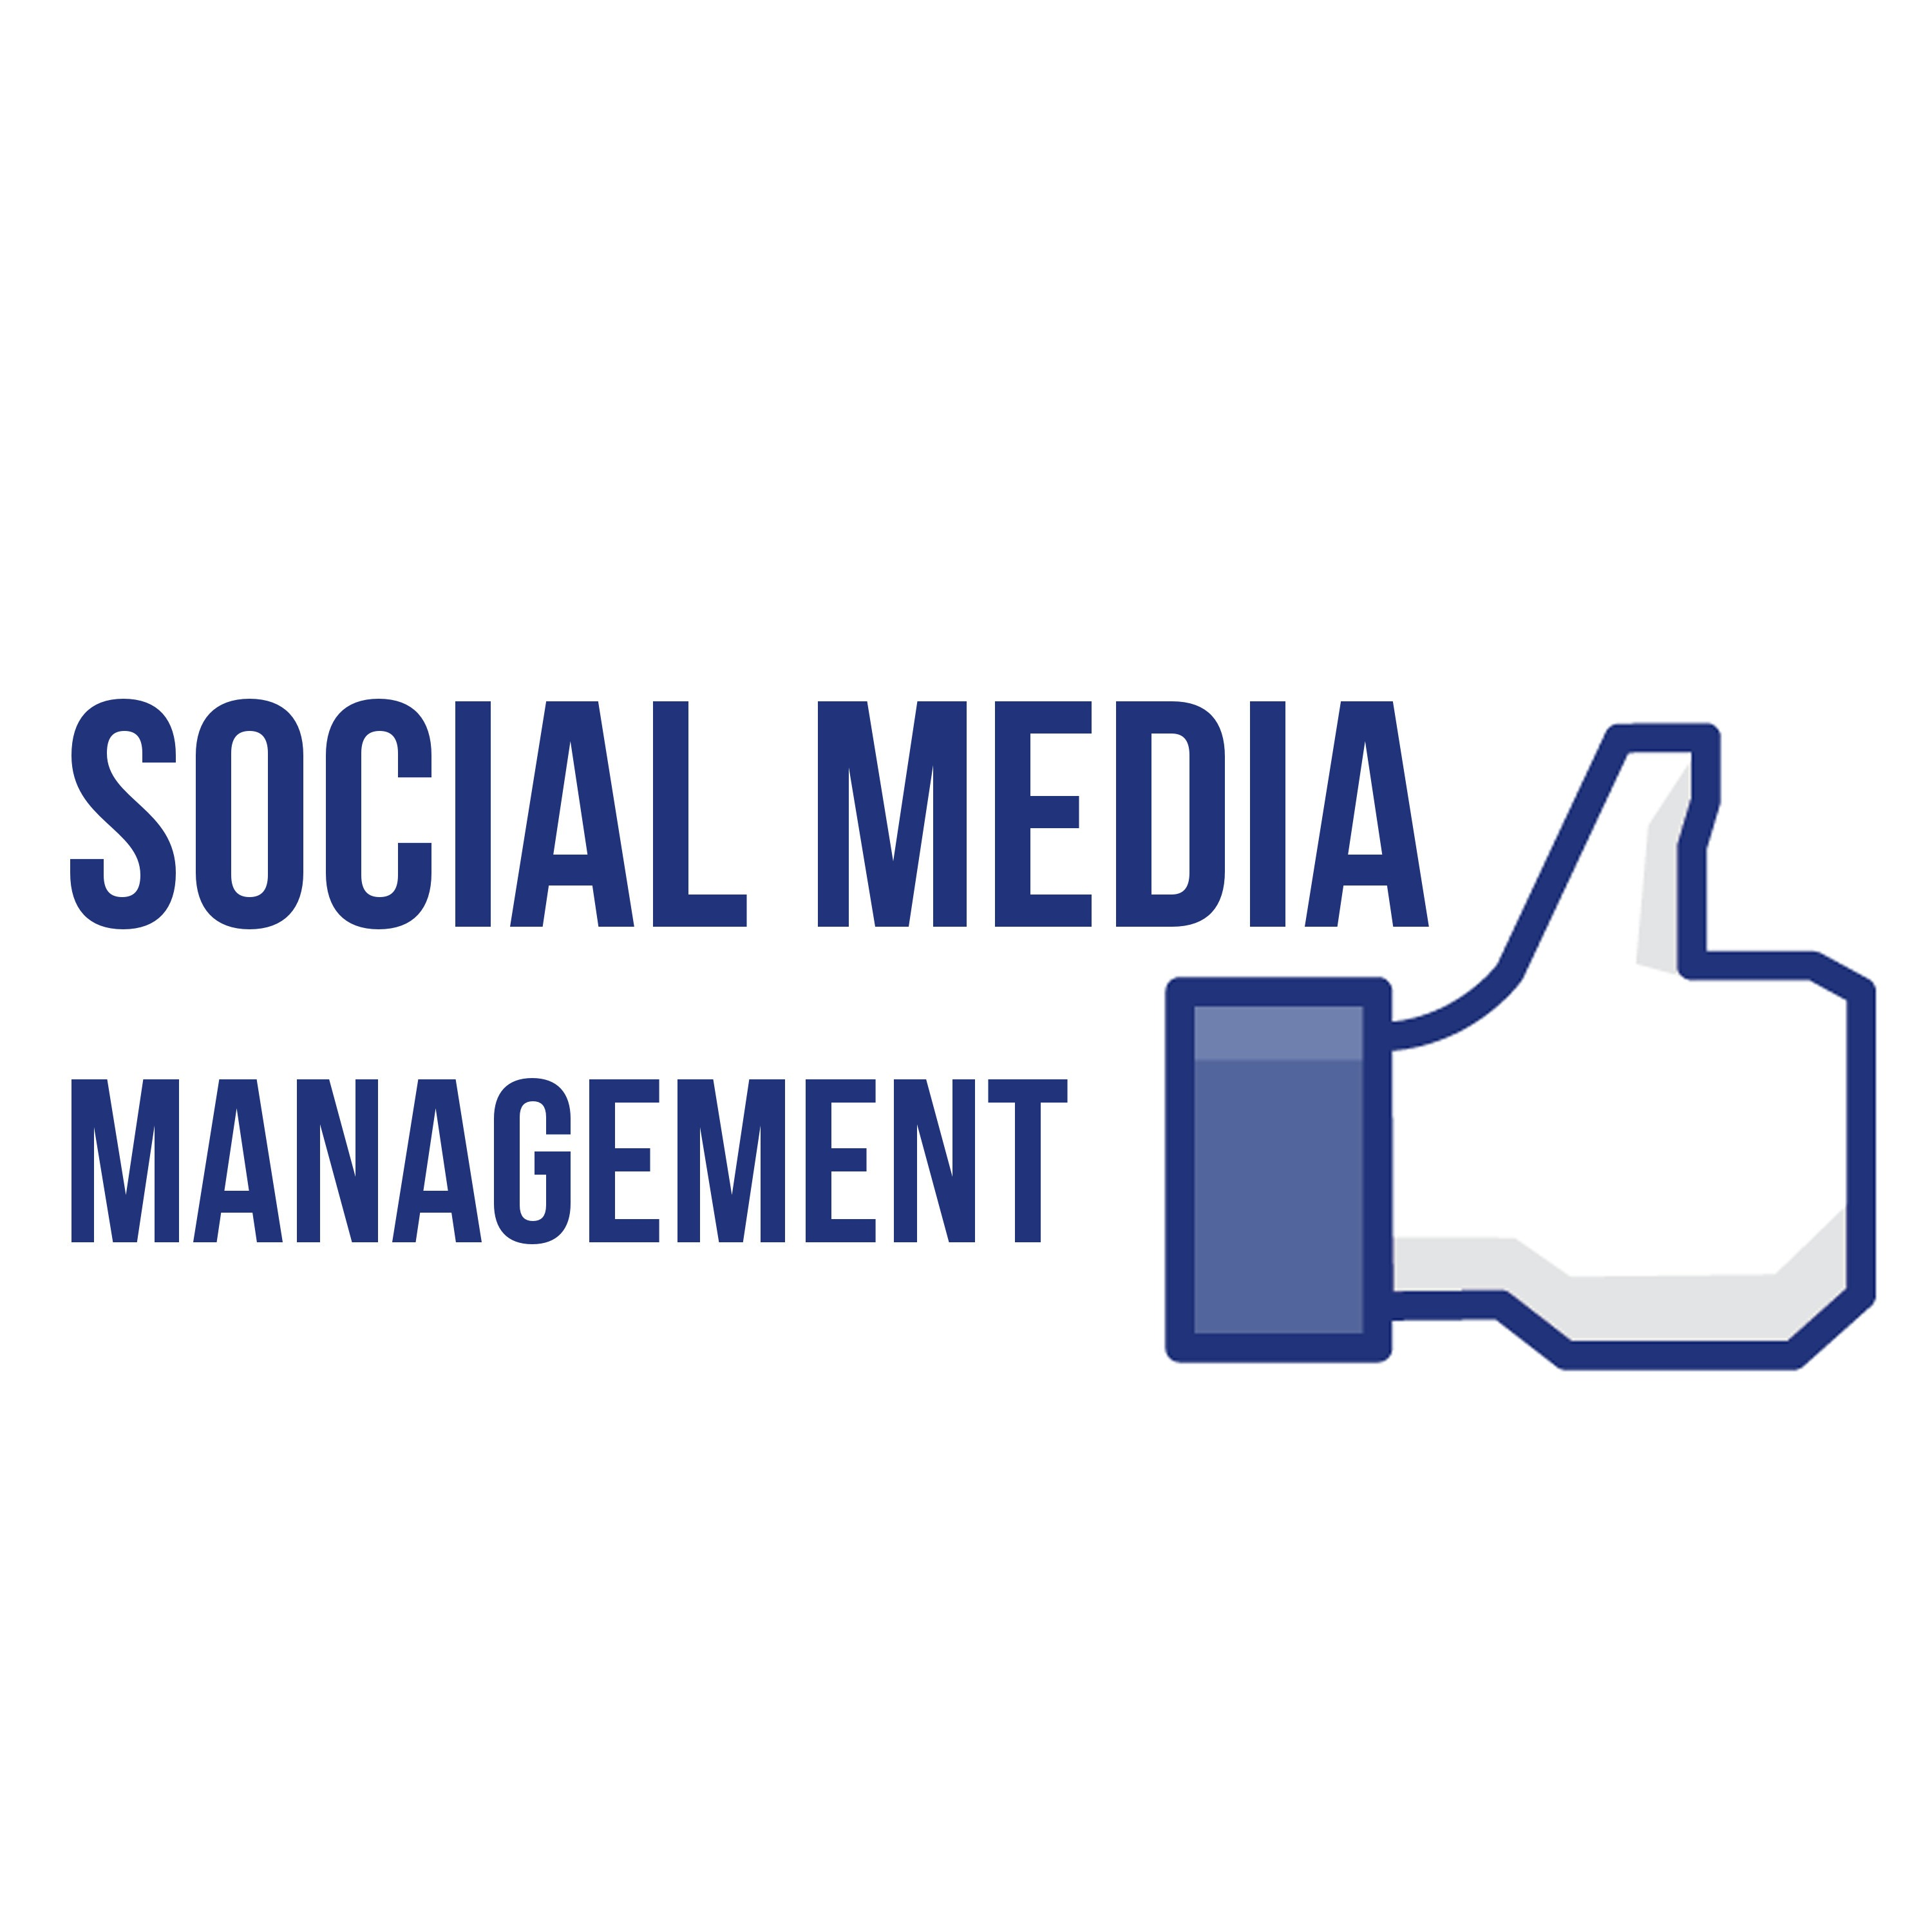 Social Media Management  Driverlayer Search Engine. Cheap Regionally Accredited Online Schools. Intellitec College Colorado Springs Co. Queue Management System St Cloud Community Ed. Web Developer University Stickers For Printer. Colorado Cancer Center Auto Insurance Company. Landetective Internet Monitor. Best Small Business Backup Solution. Assisted Living Lancaster Ca